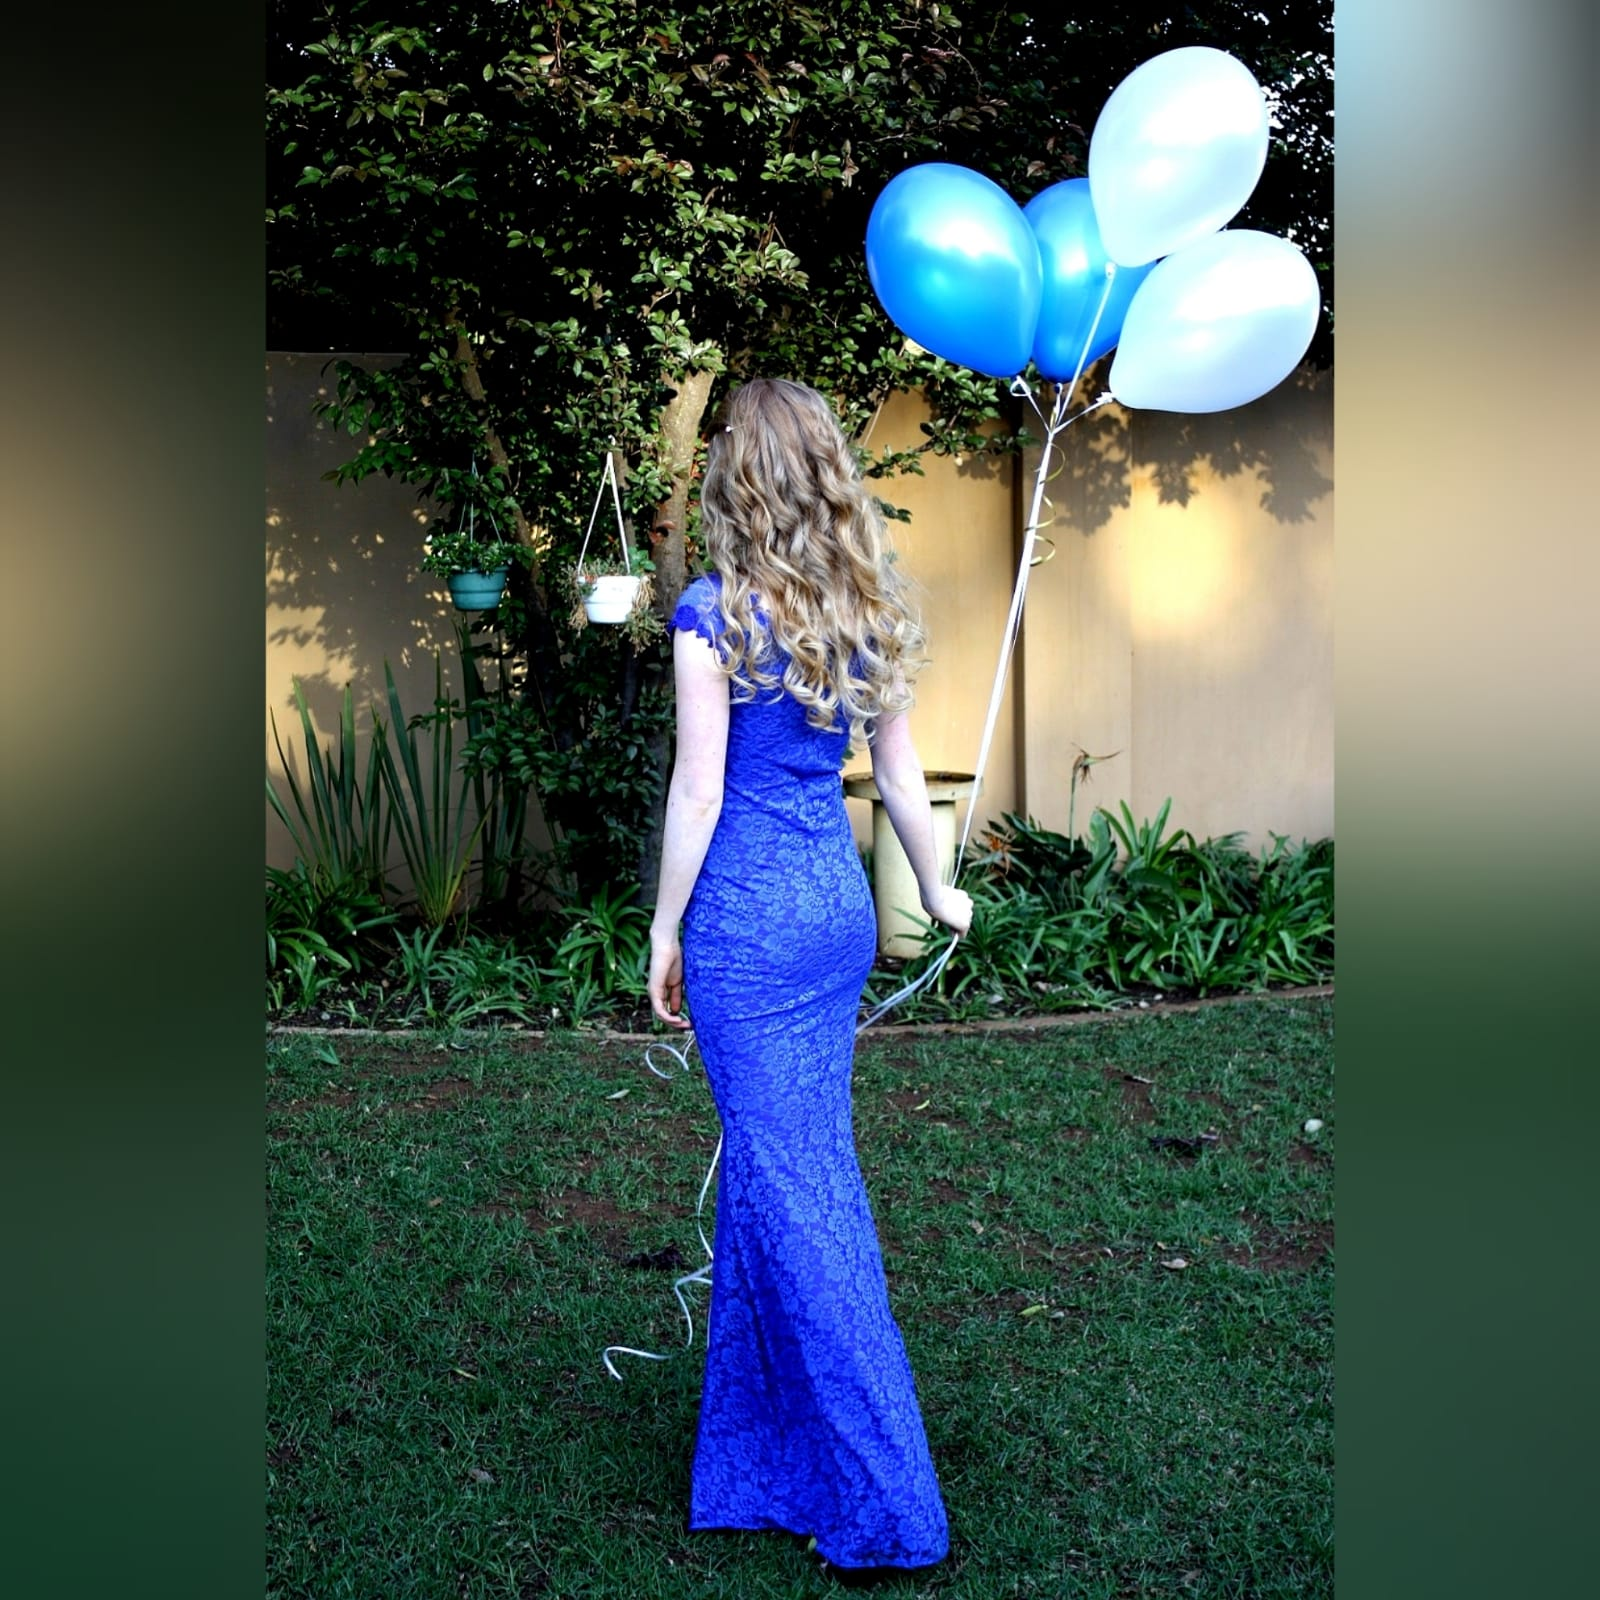 Royal blue fully lace prom dress 1 royal blue fully lace prom dress. An elegant simple design fitted till the hip with a slight flare. An off-shoulder neckline and cap sleeves detailed with guipure lace.